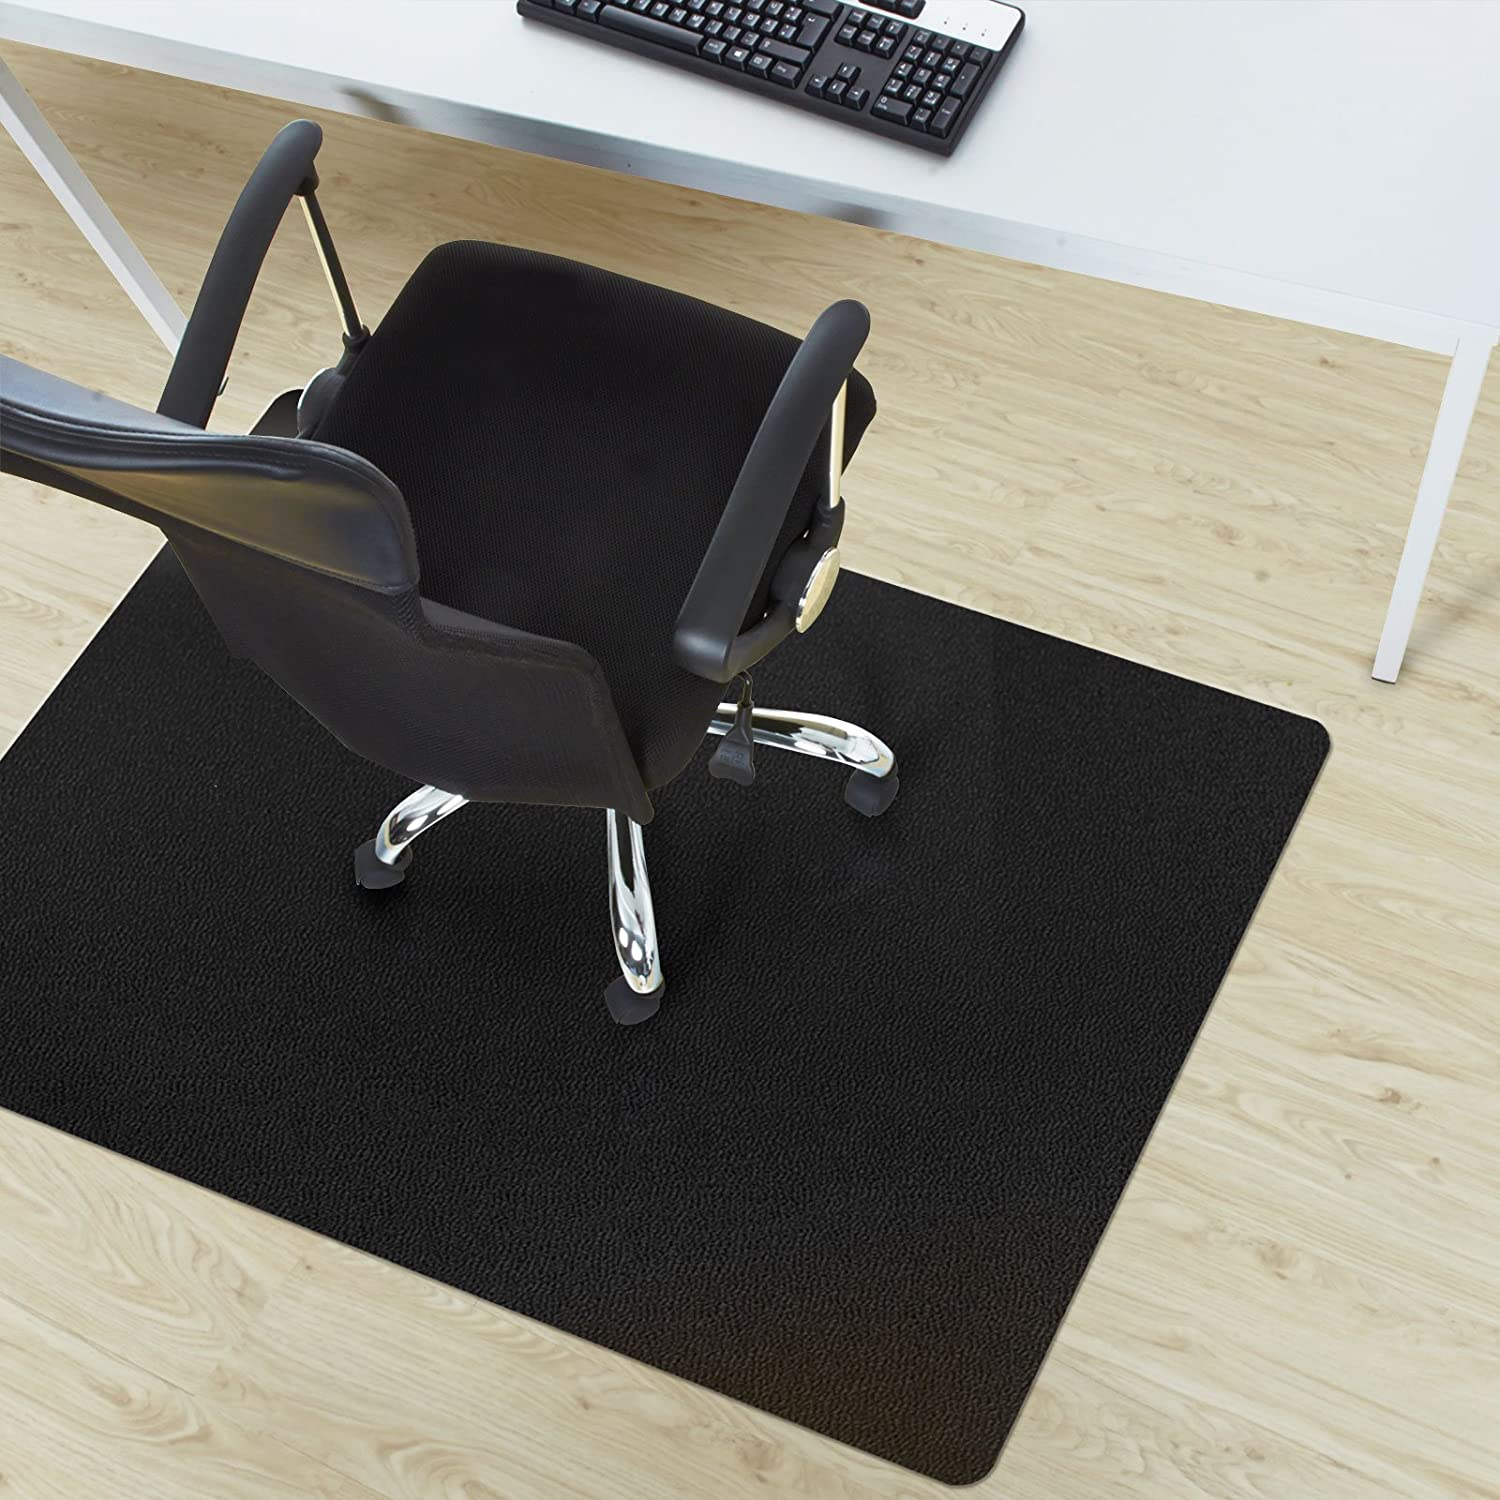 rug decoration of full clear roll cherry office rolling pad mats plastic to lamination for up floors studded dark floor where bentyl rugs size bamboo lip desk hayneedle black master matt small buy chair with protector under wood x htm large hard mat carpet hardwood us